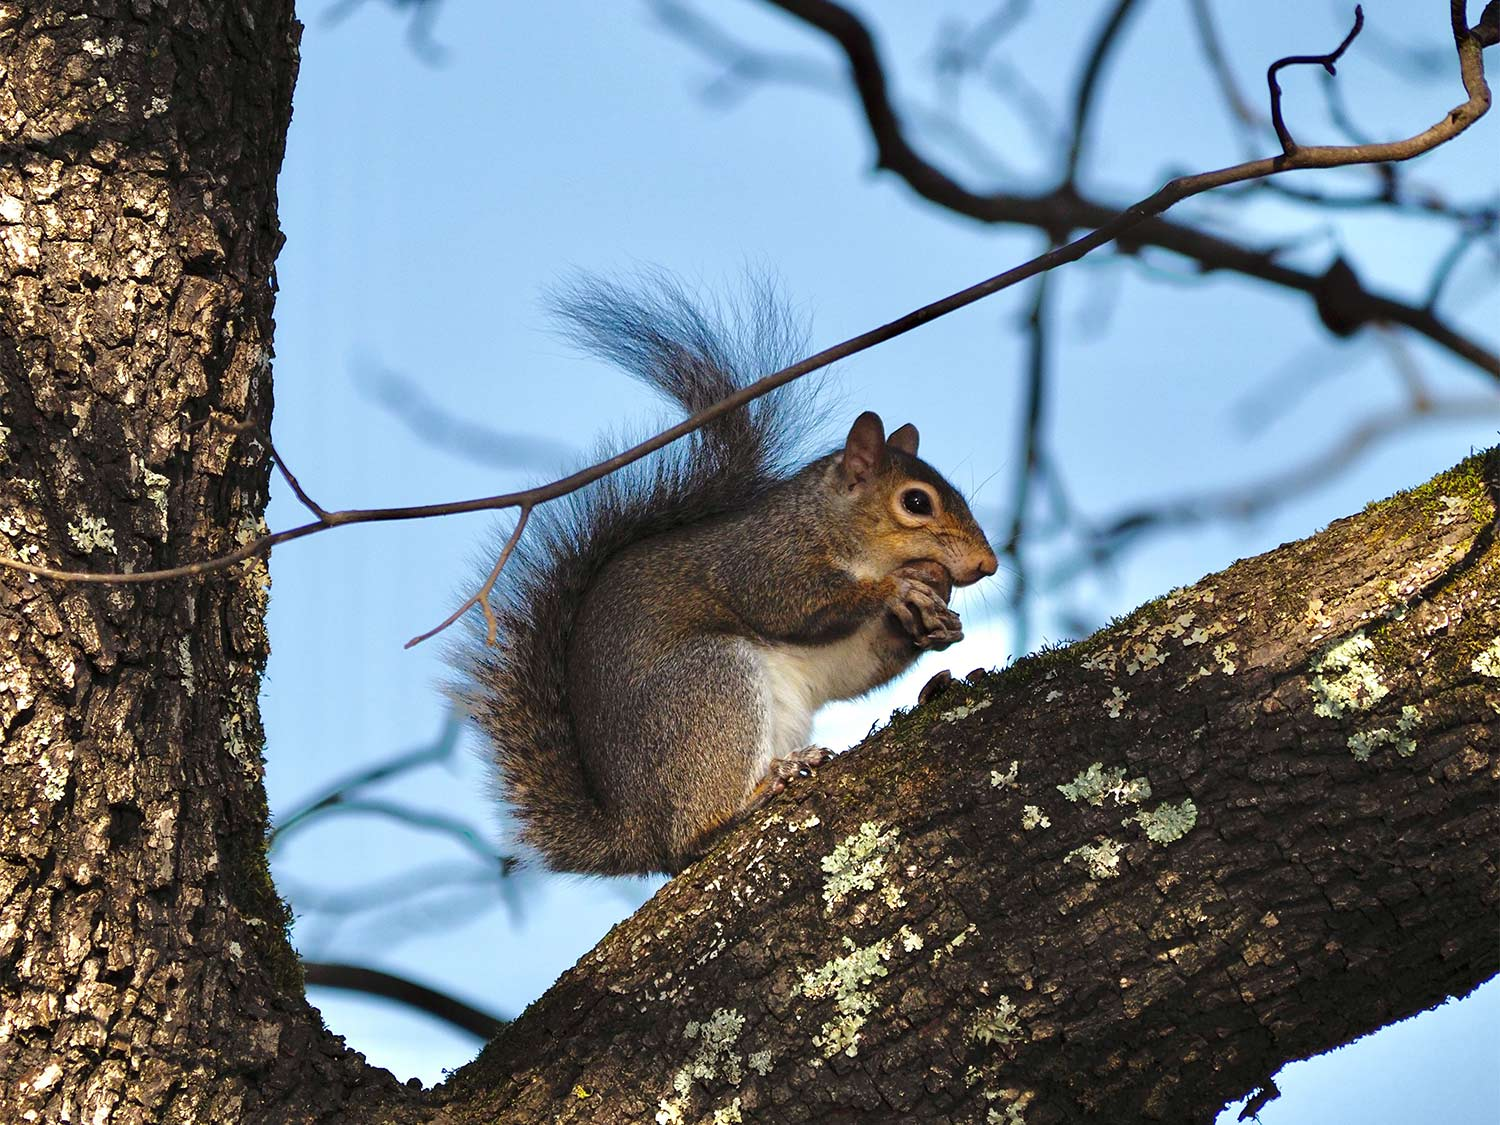 A small squirrel sits in a tree limb and nibbles on foods.